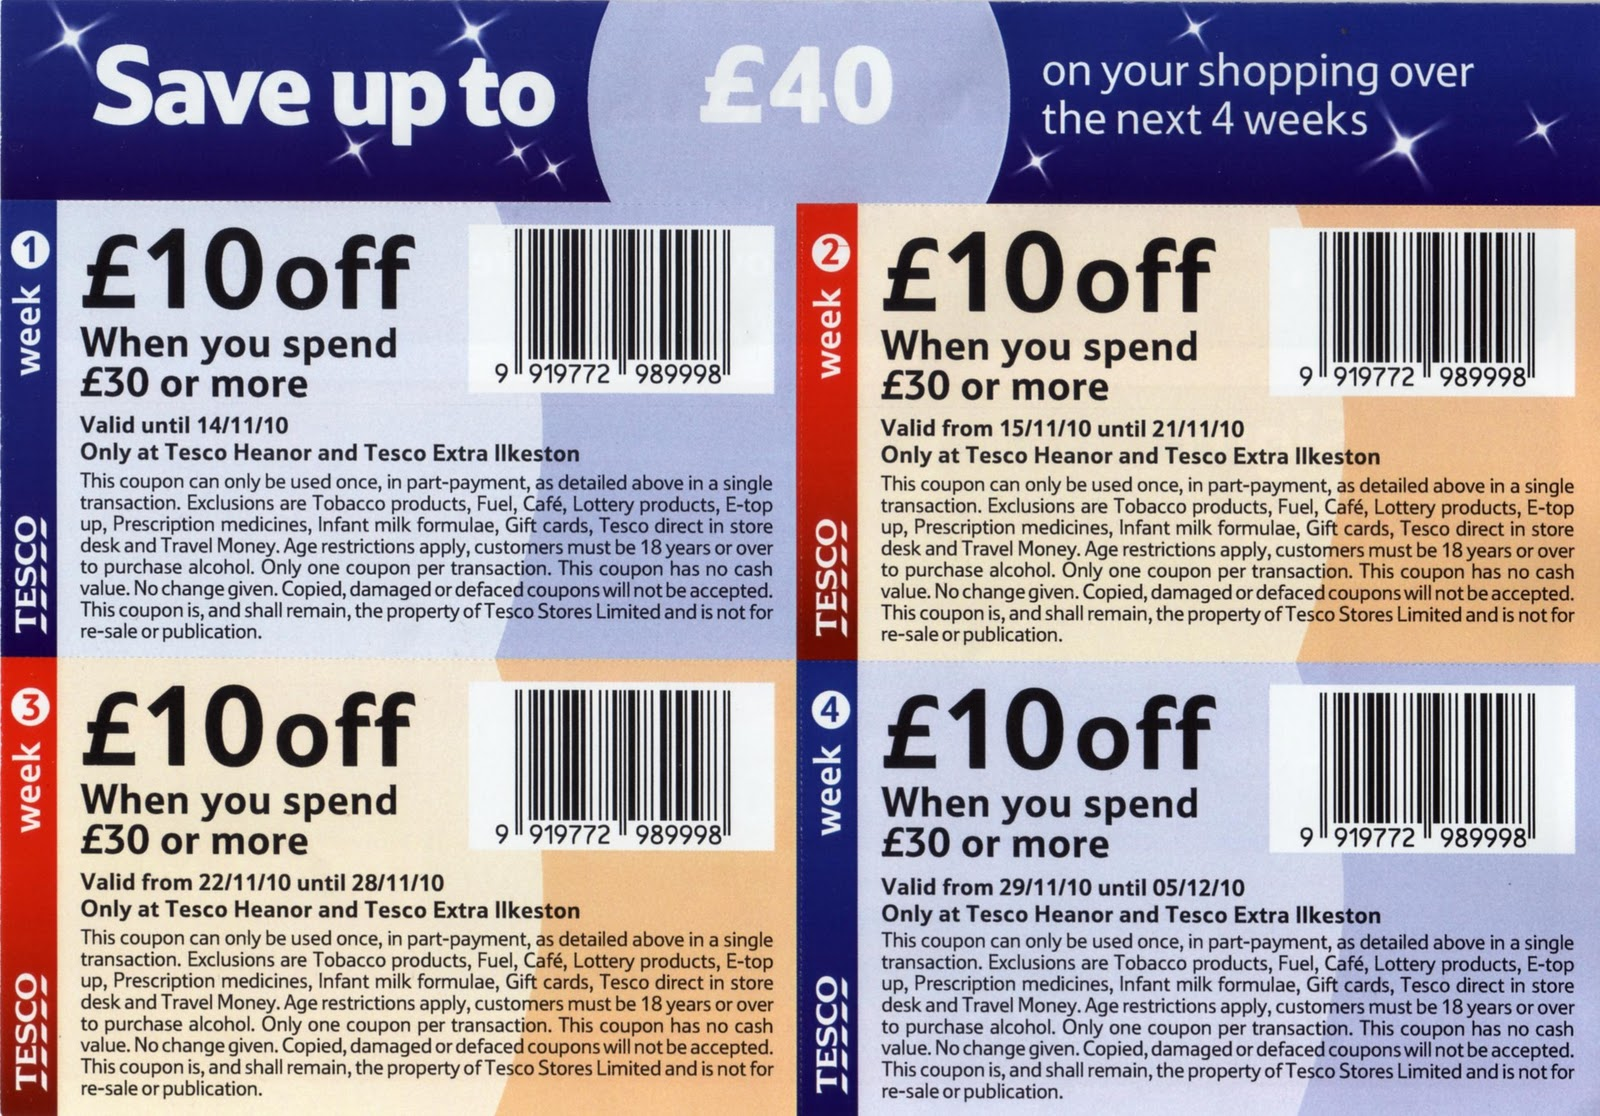 Tesco rarely offers promo codes. On average, Tesco offers 0 codes or coupons per month. Check this page often, or follow Tesco (hit the follow button up top) to keep updated on their latest discount codes. Check for Tesco's promo code exclusions. Tesco promo codes sometimes have exceptions on certain categories or brands.3/5(2).